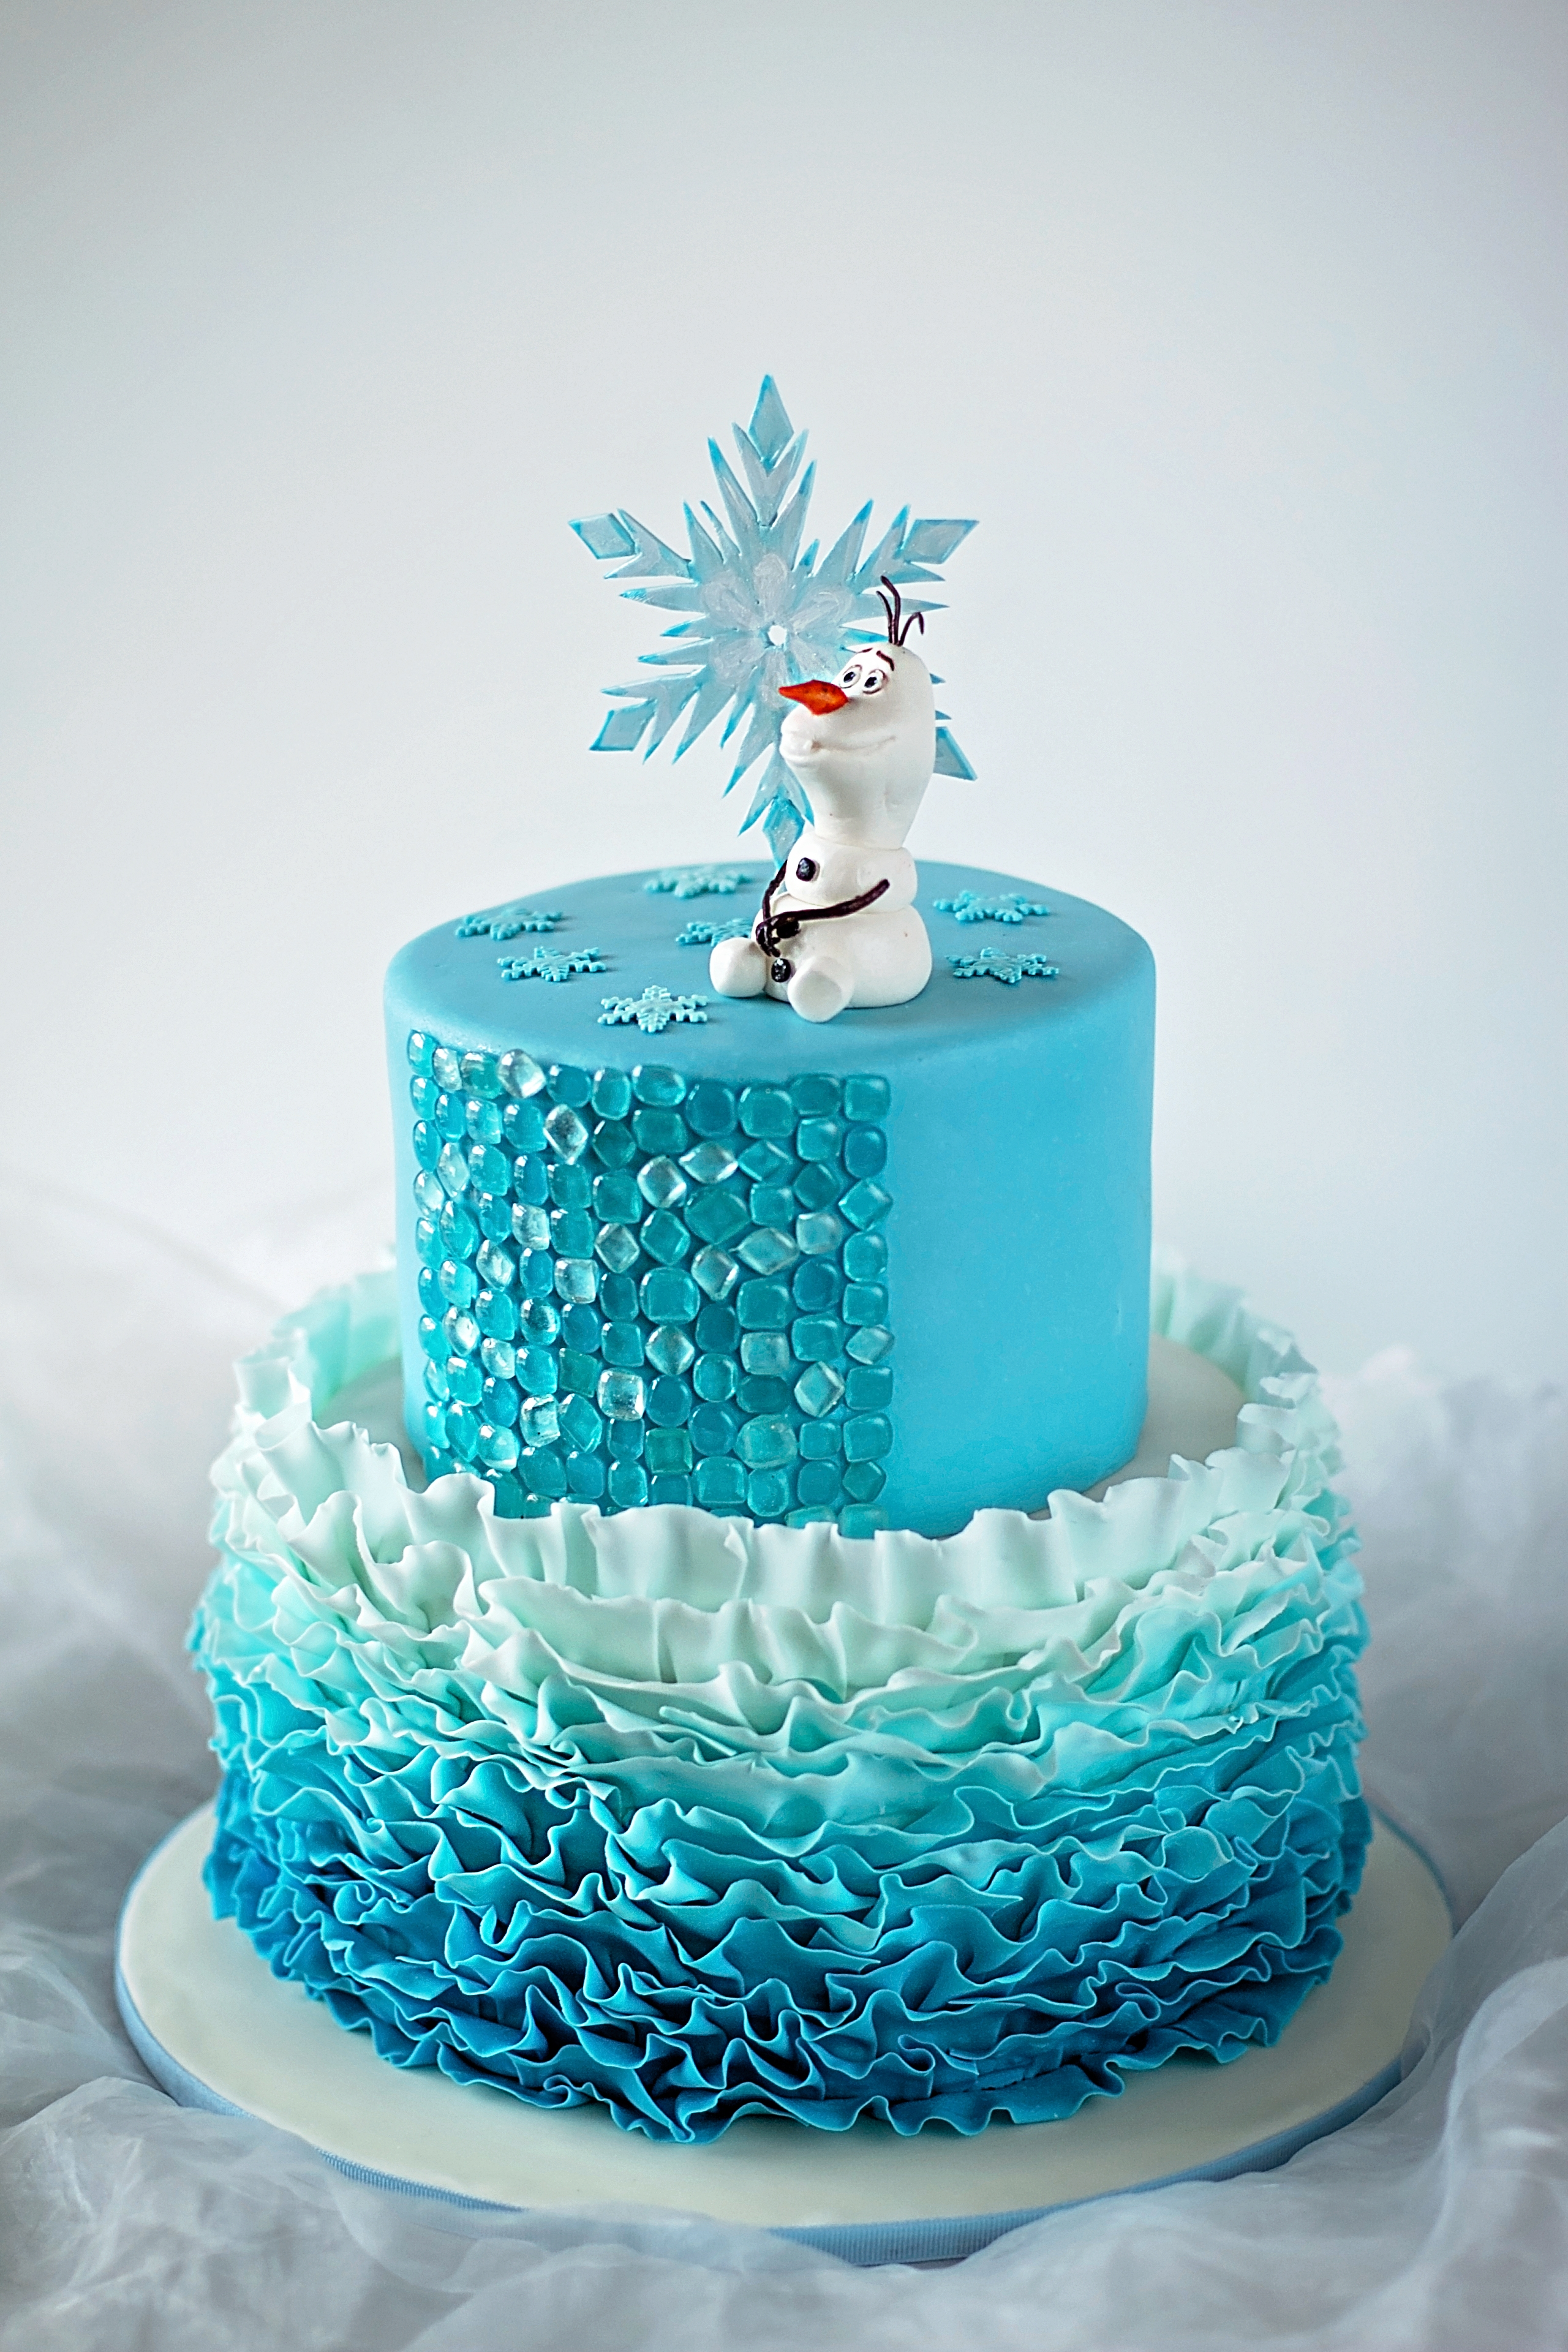 Mary Poppins Themed Cake 17 Cherry Tree Lane Whimsical ...